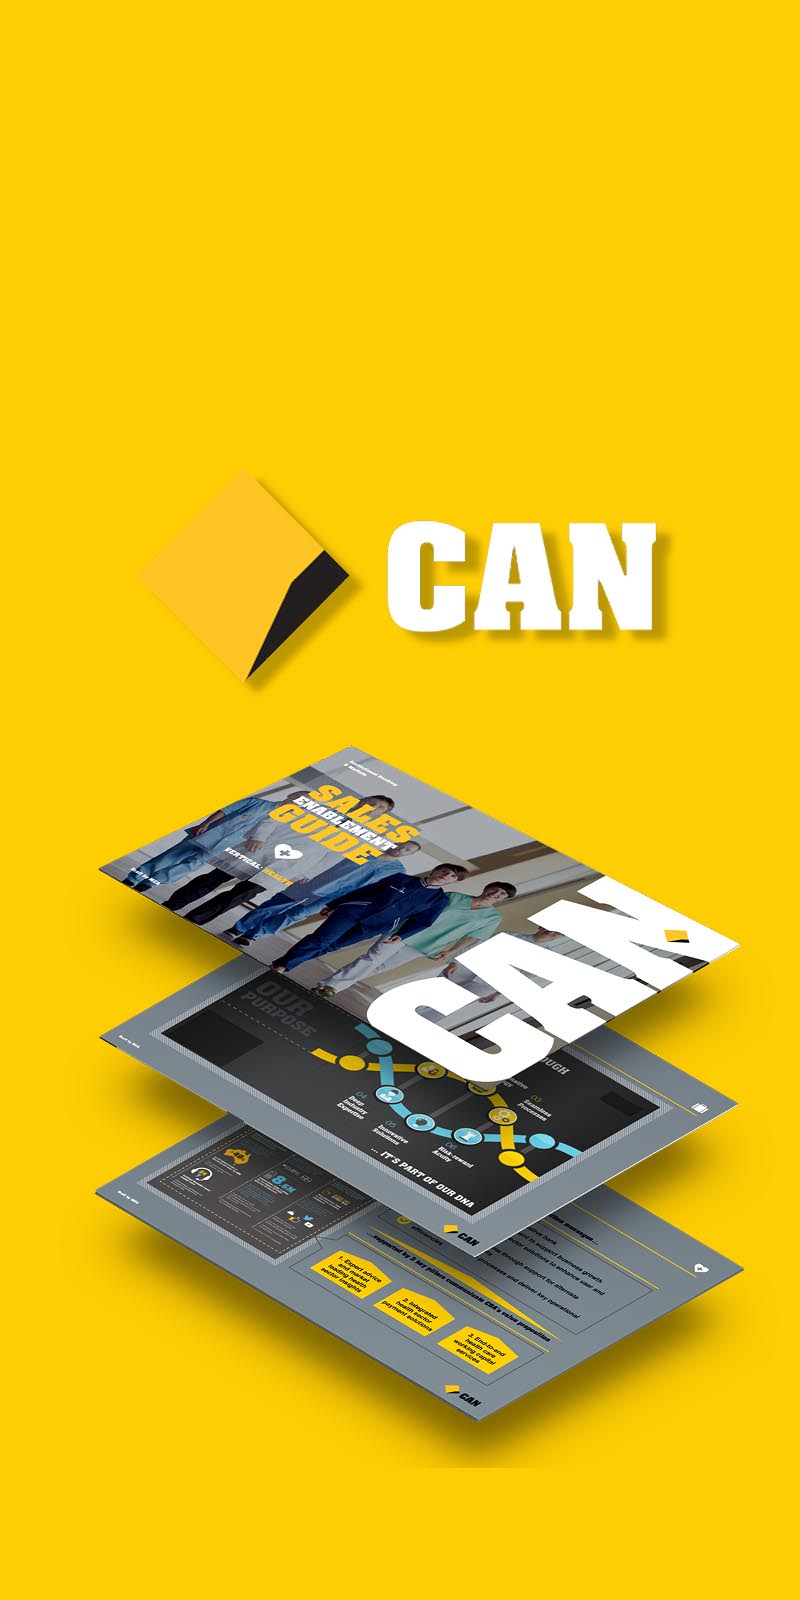 MasterCard Advisors CommBank infographic design by Think Creative Agency